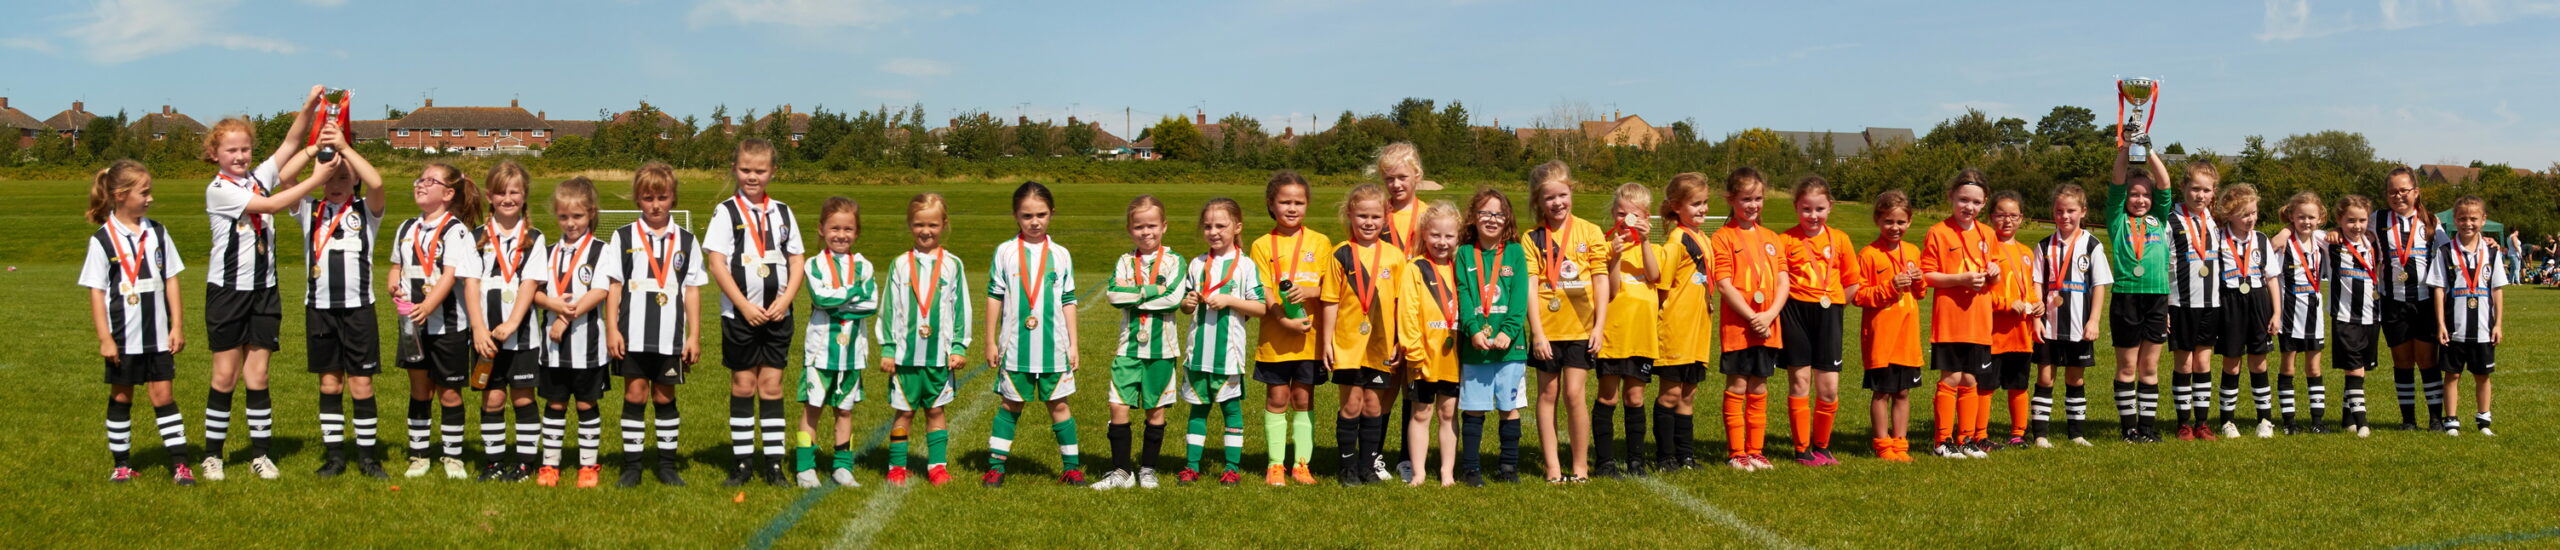 Rugby Borough Girls - Festival of Football Match photo